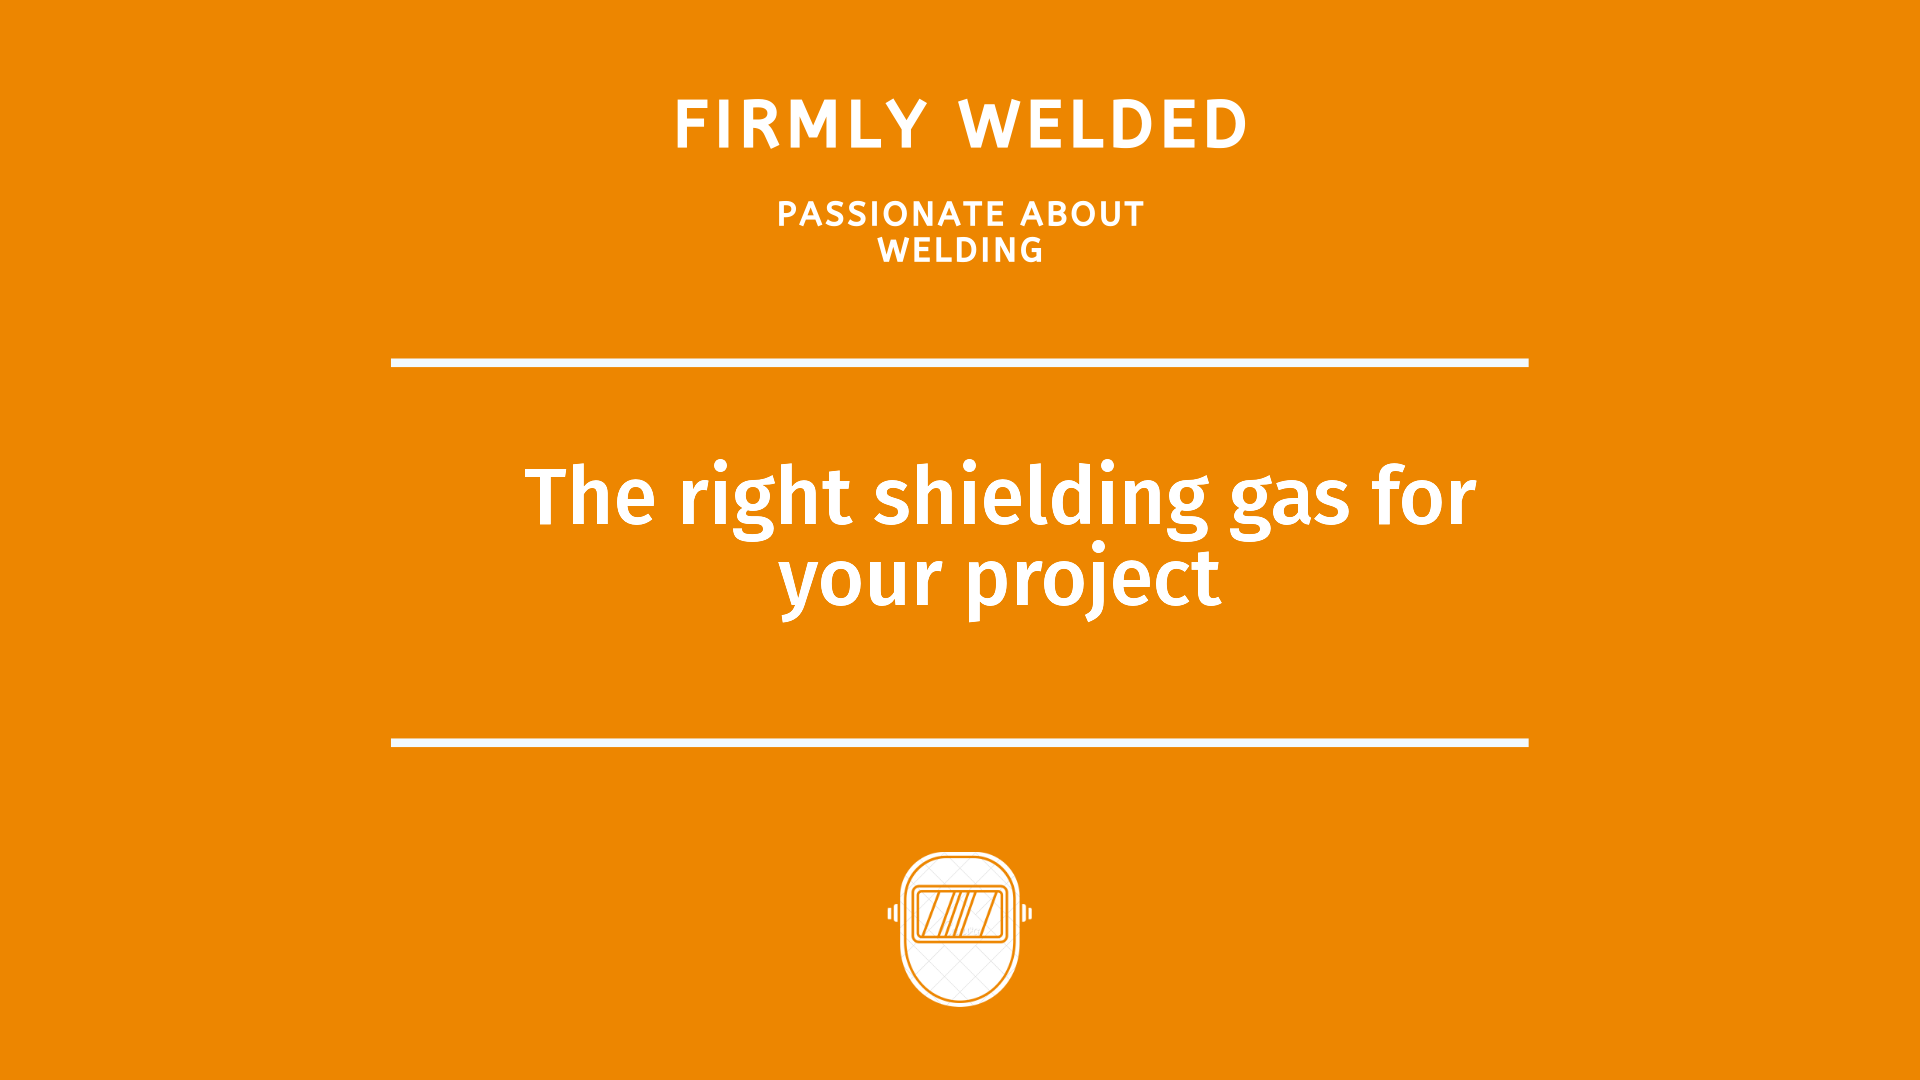 The right shielding gas for your project